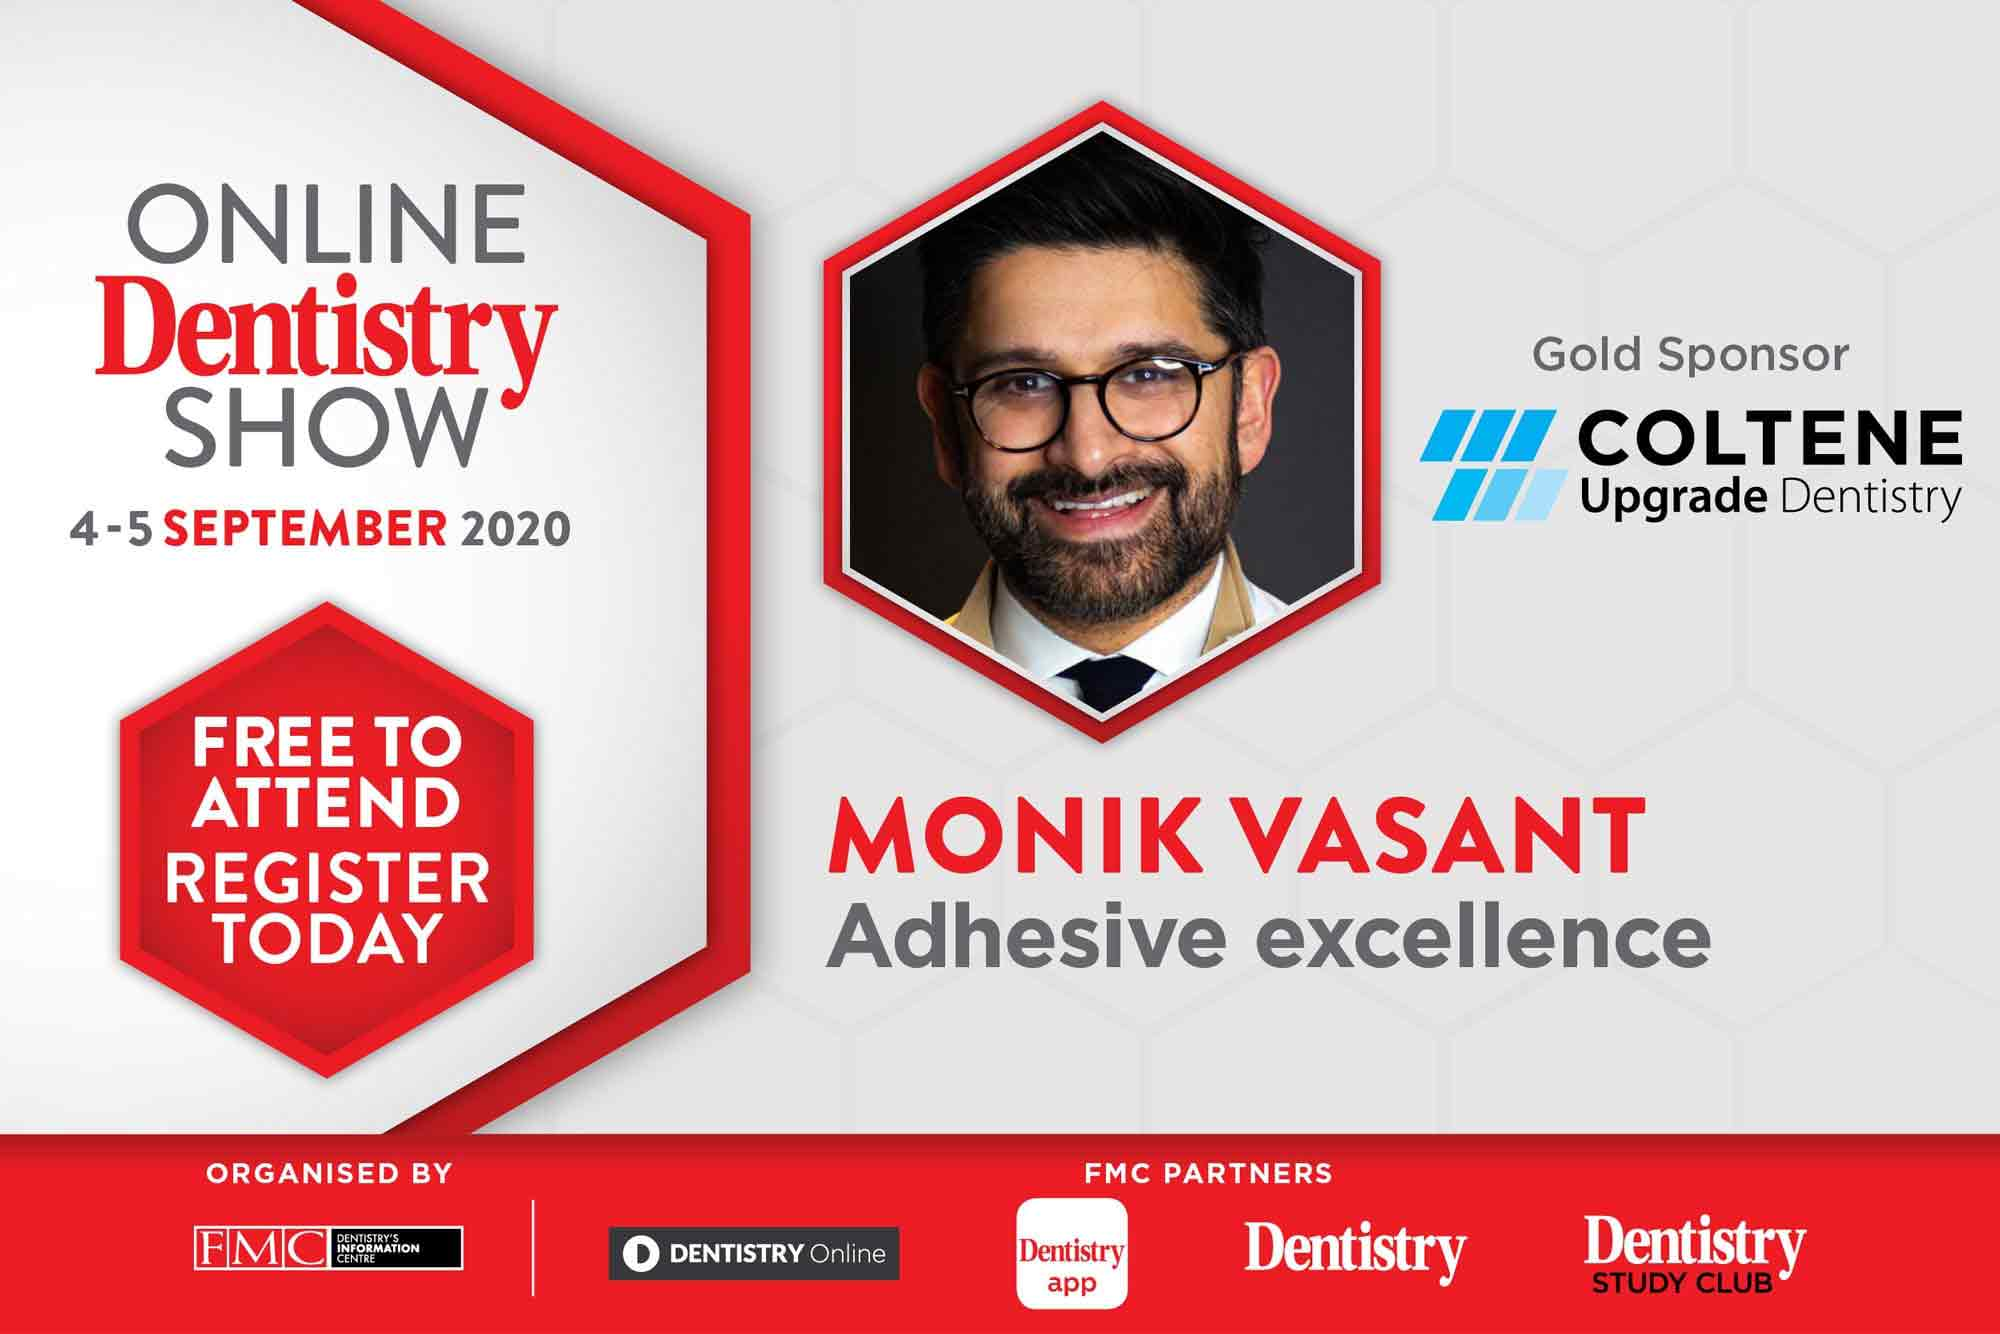 Monik Vasant for Coltene at the Online Dentistry Show